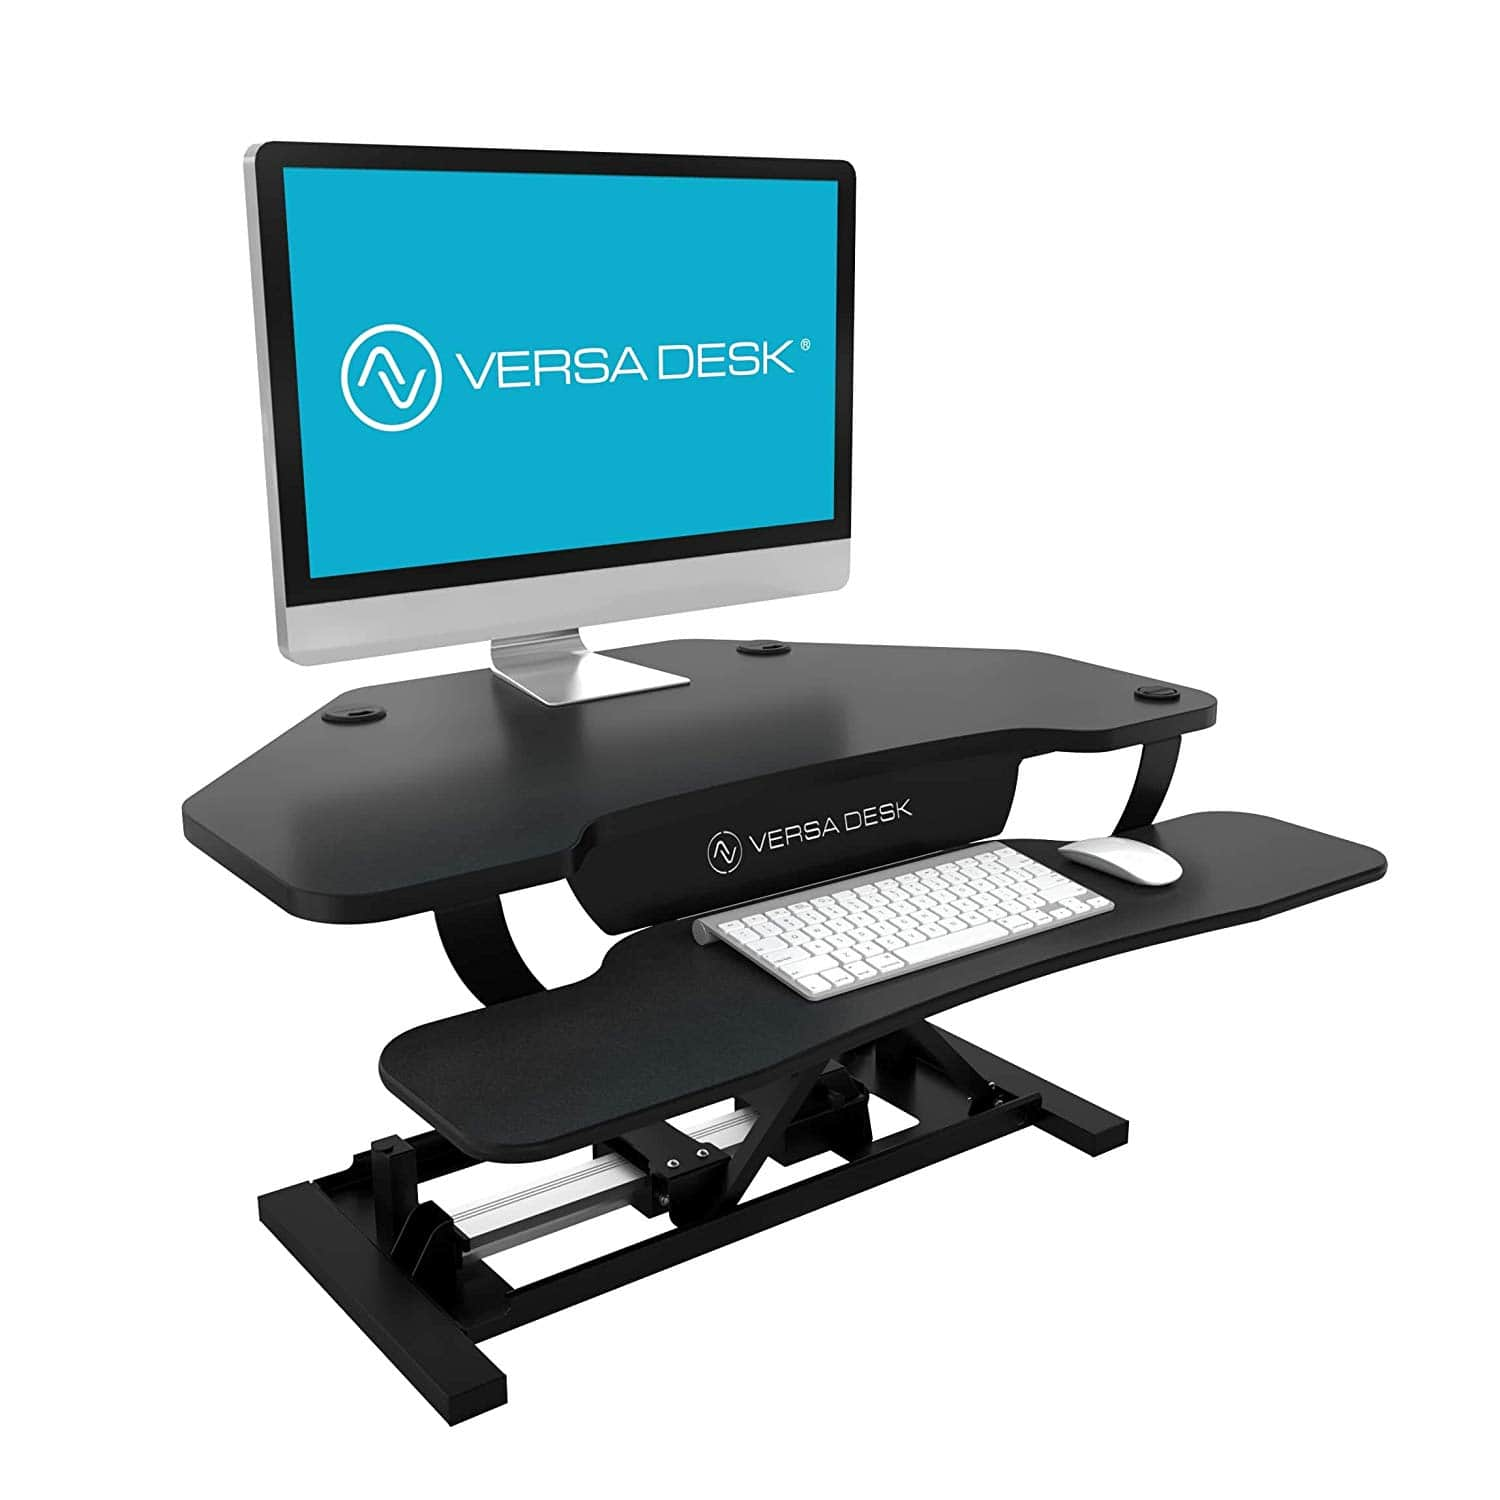 VersaDesk Power Pro Corner 36 inch Black 3D View Facing Right